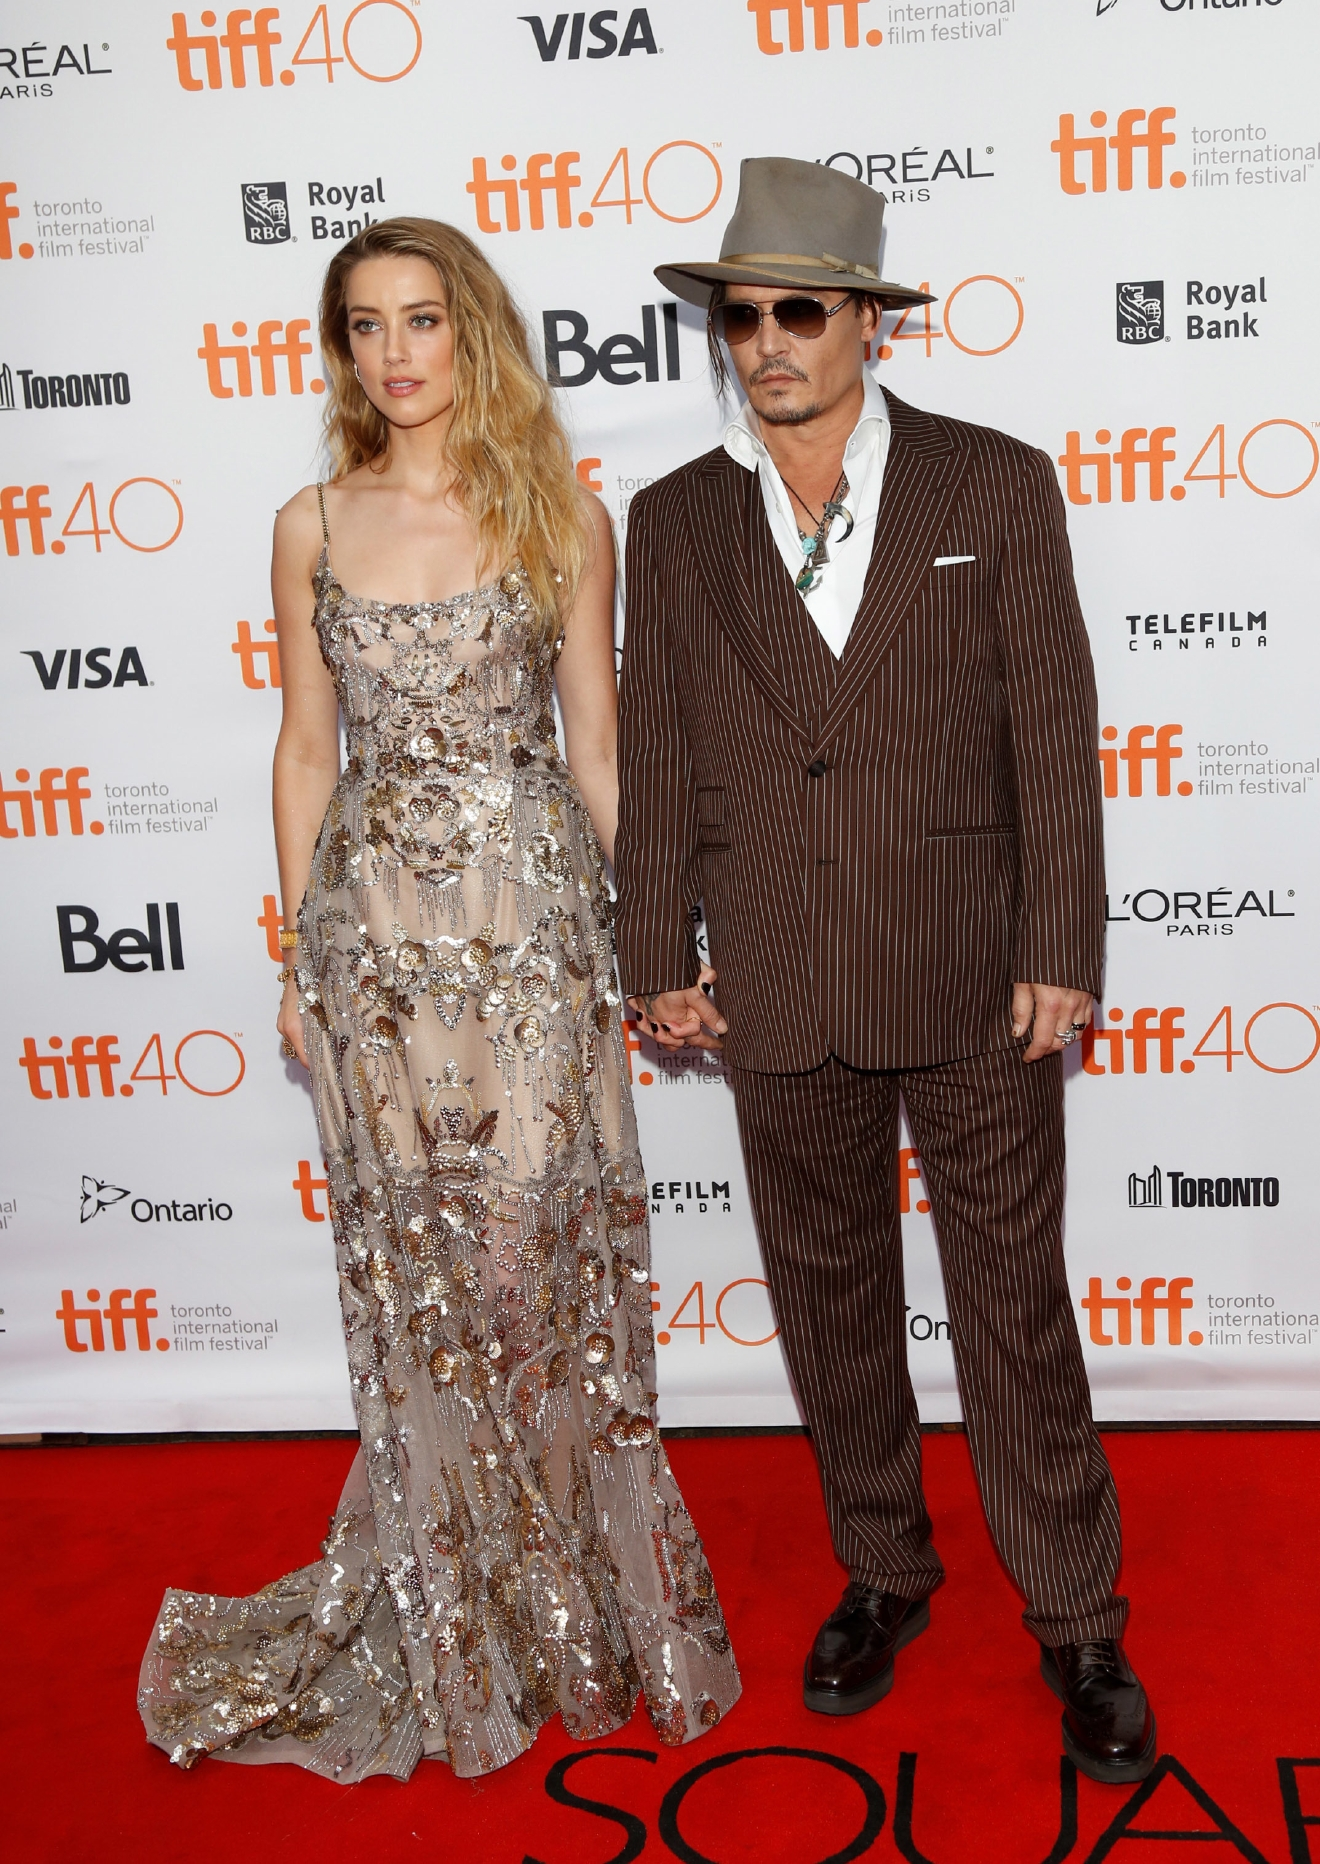 Actors Johnny Depp and Amber Heard attend the premiere of The Danish Girl during the 40th Toronto International Film Festival, TIFF, at Princess of Wales Theatre in Toronto, Canada, on 12 September 2015. Photo: Ian Wilson                                    Featuring: Johnny Depp, Amber Heard                  Where: Toronto, Canada                  When: 12 Sep 2015                  Credit: WENN.com                                    **Not available for publication in Germany**